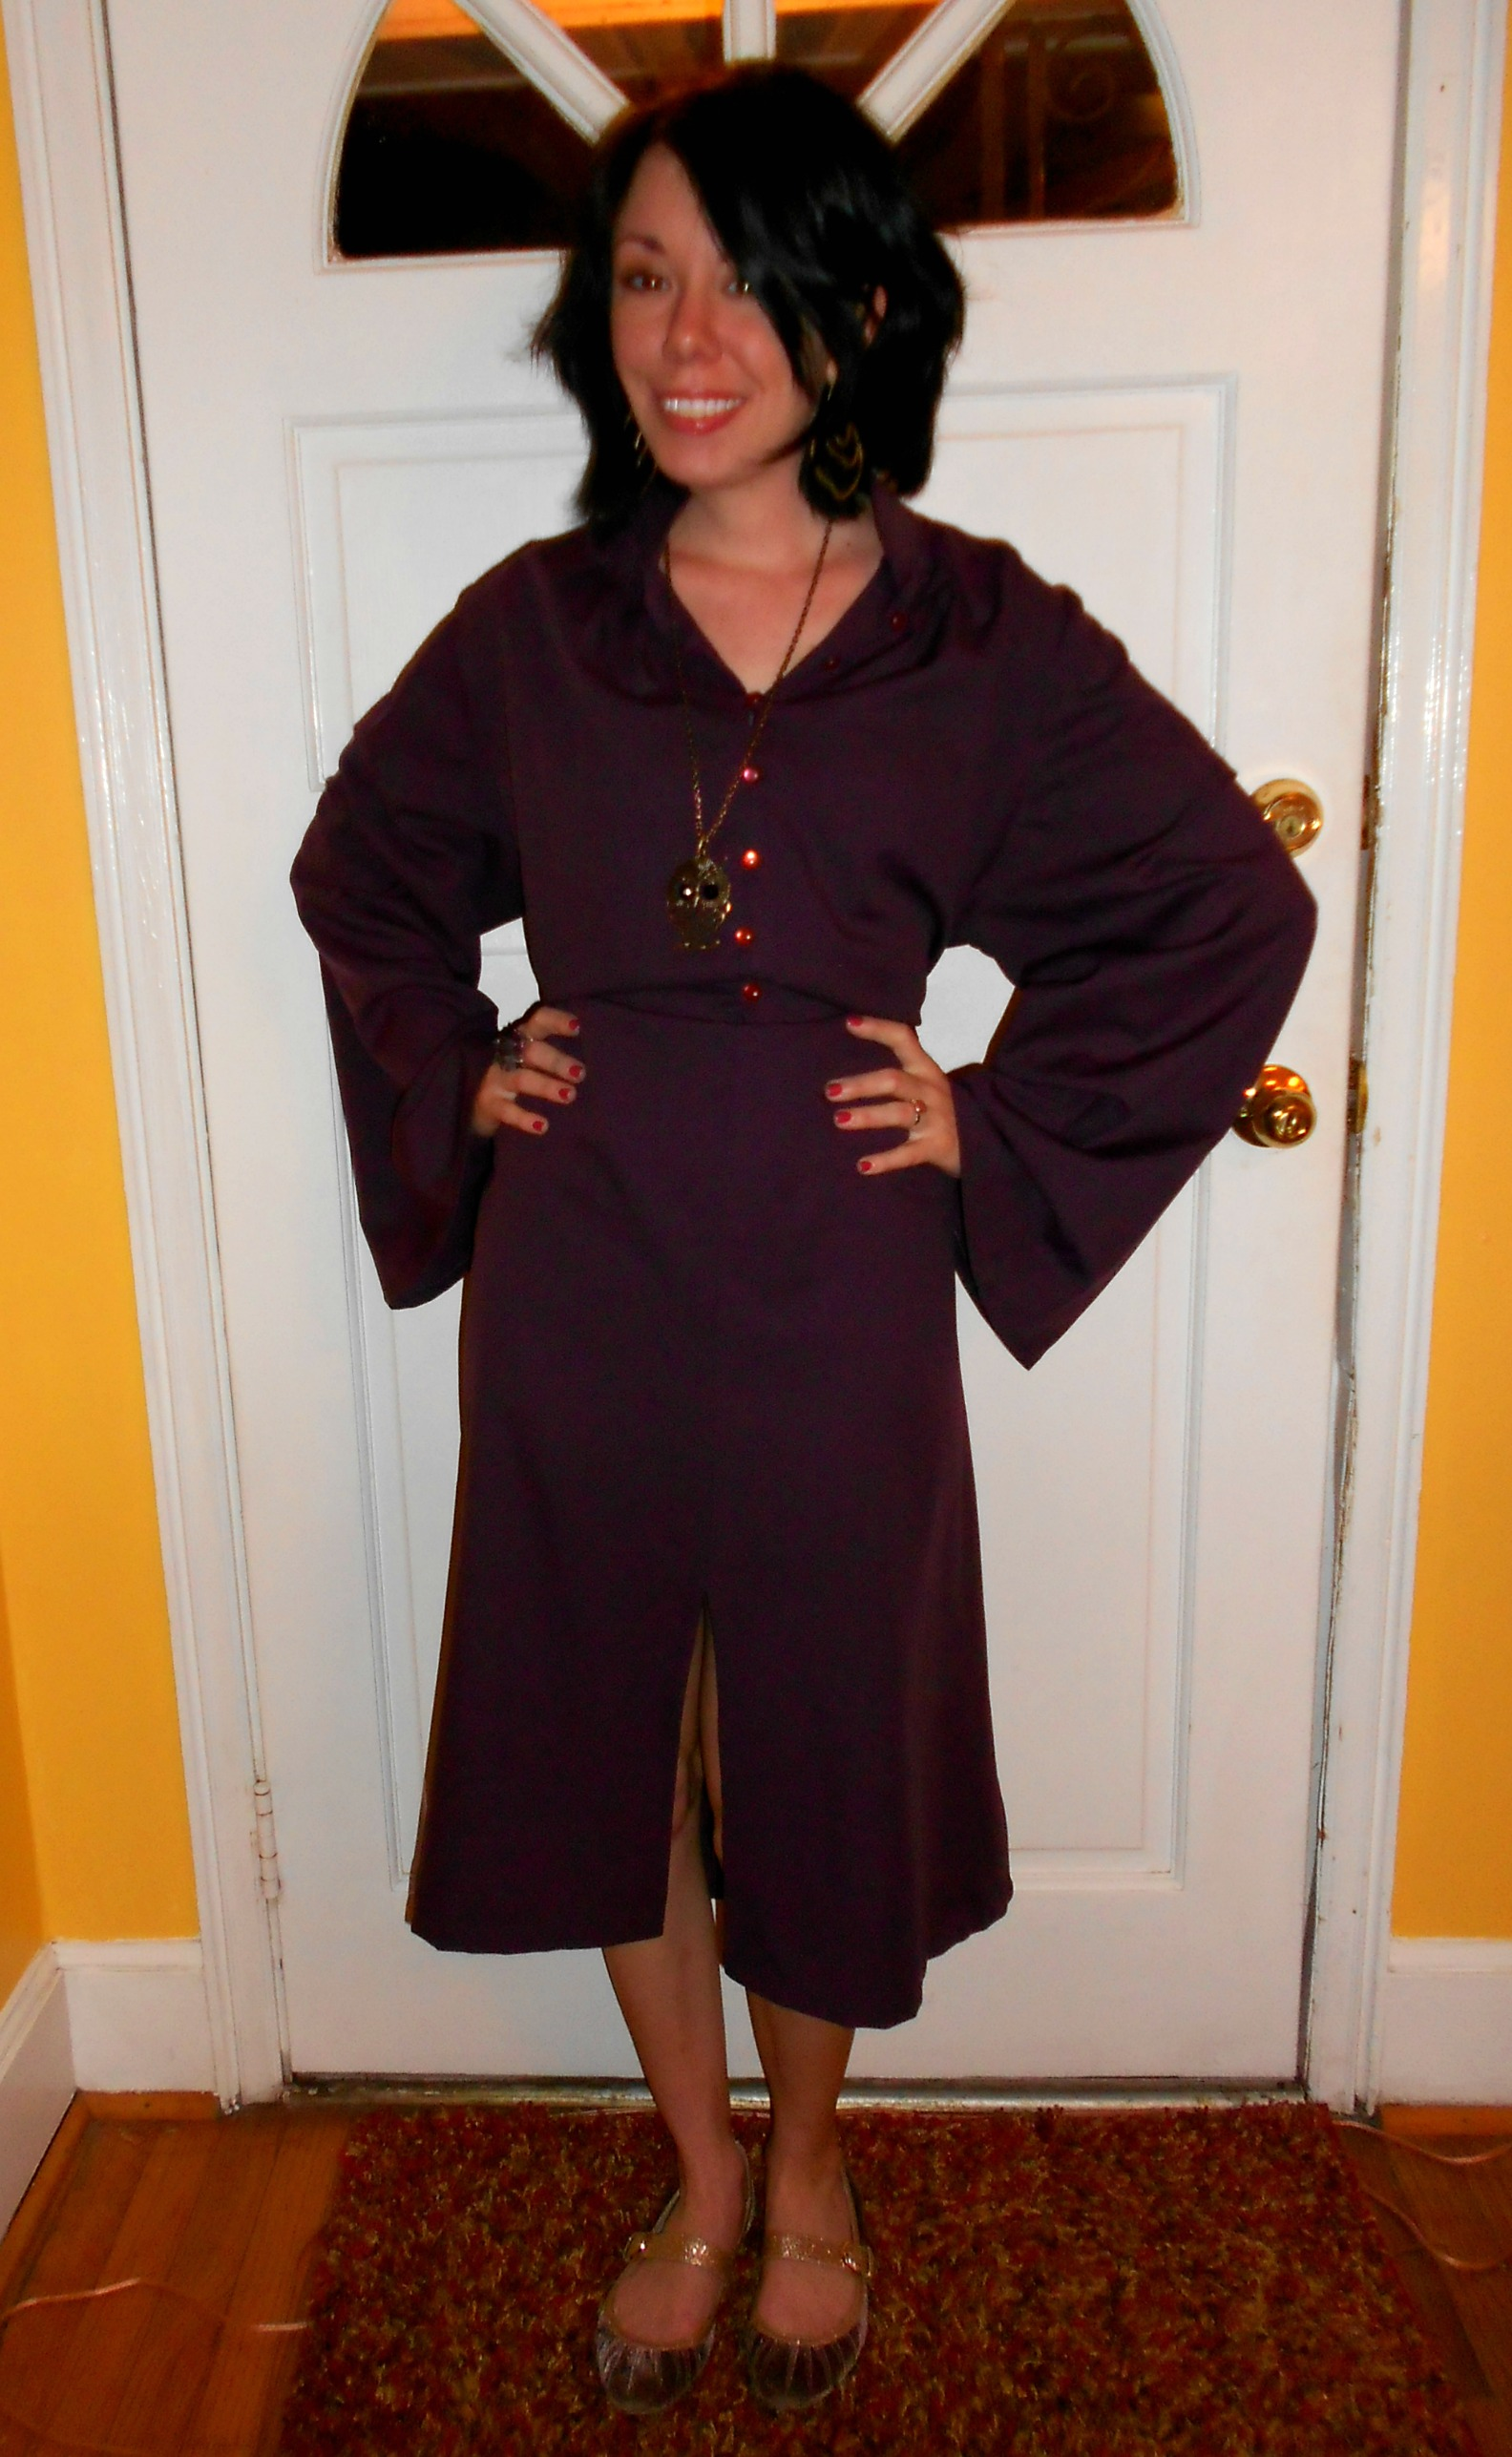 Day 205: Grape Jelly Dress 5